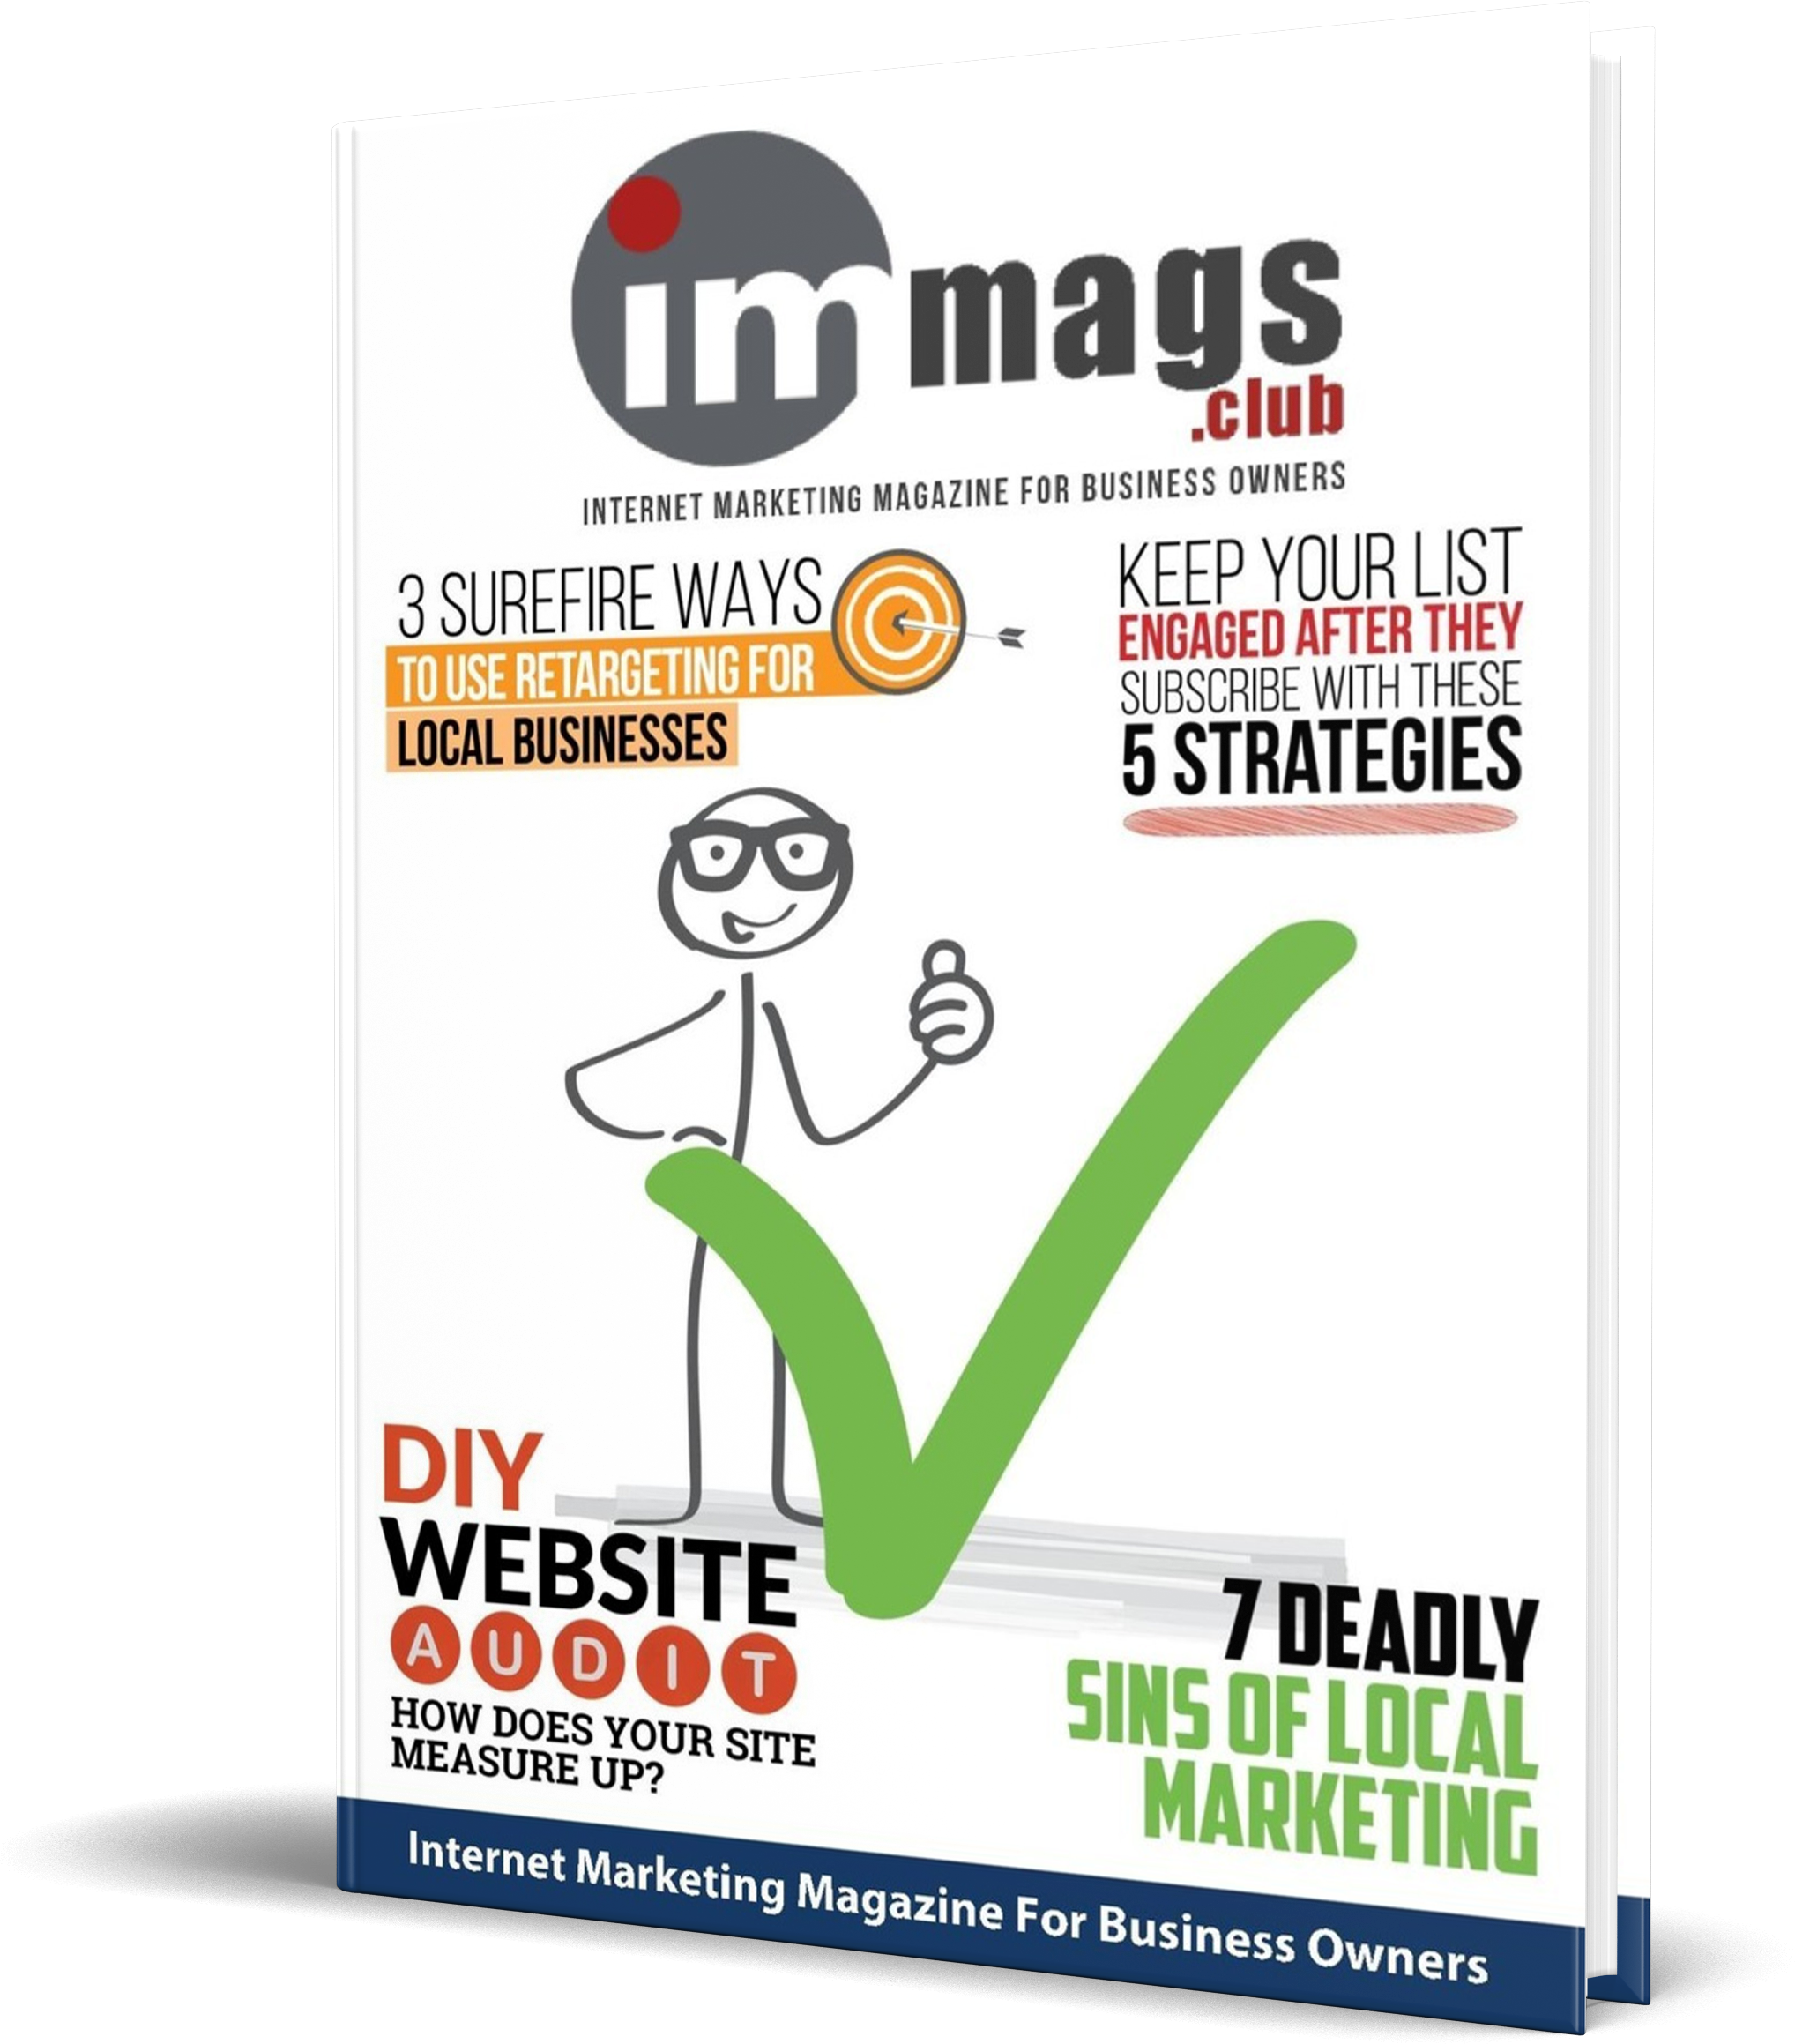 IMMAGS - Internet Marketing Magazine